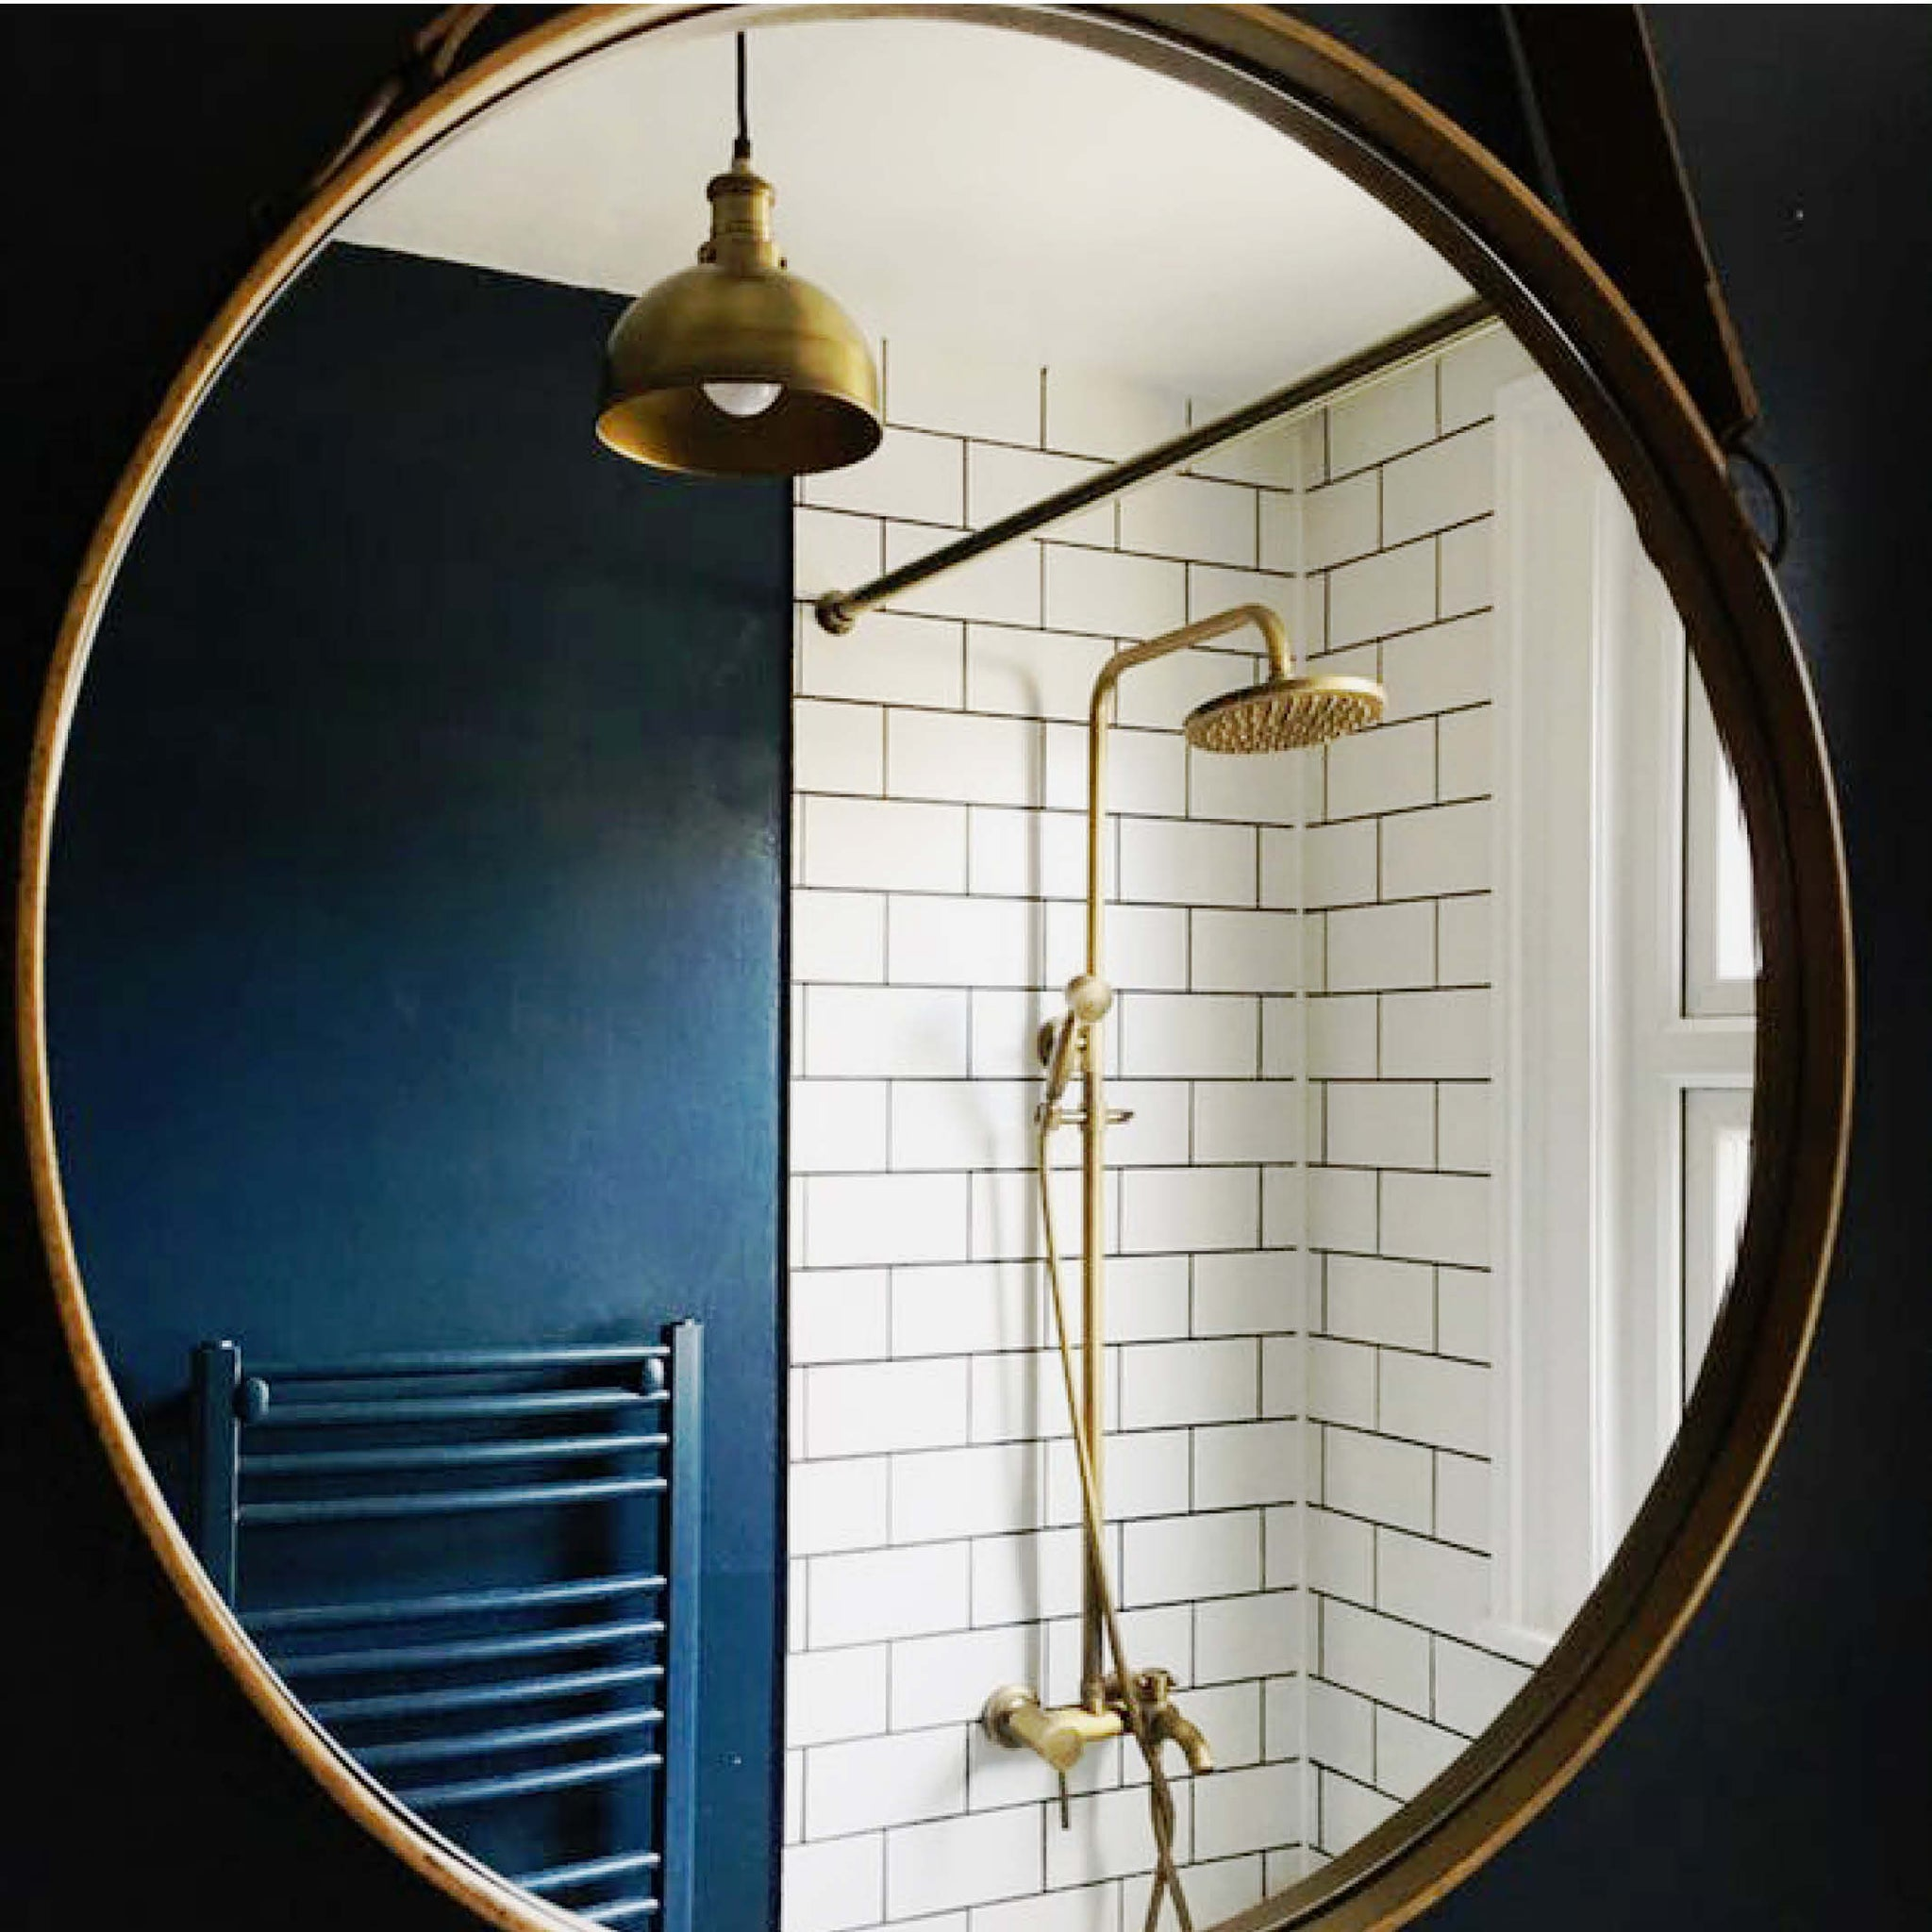 Brass toned interior complementing dark walls